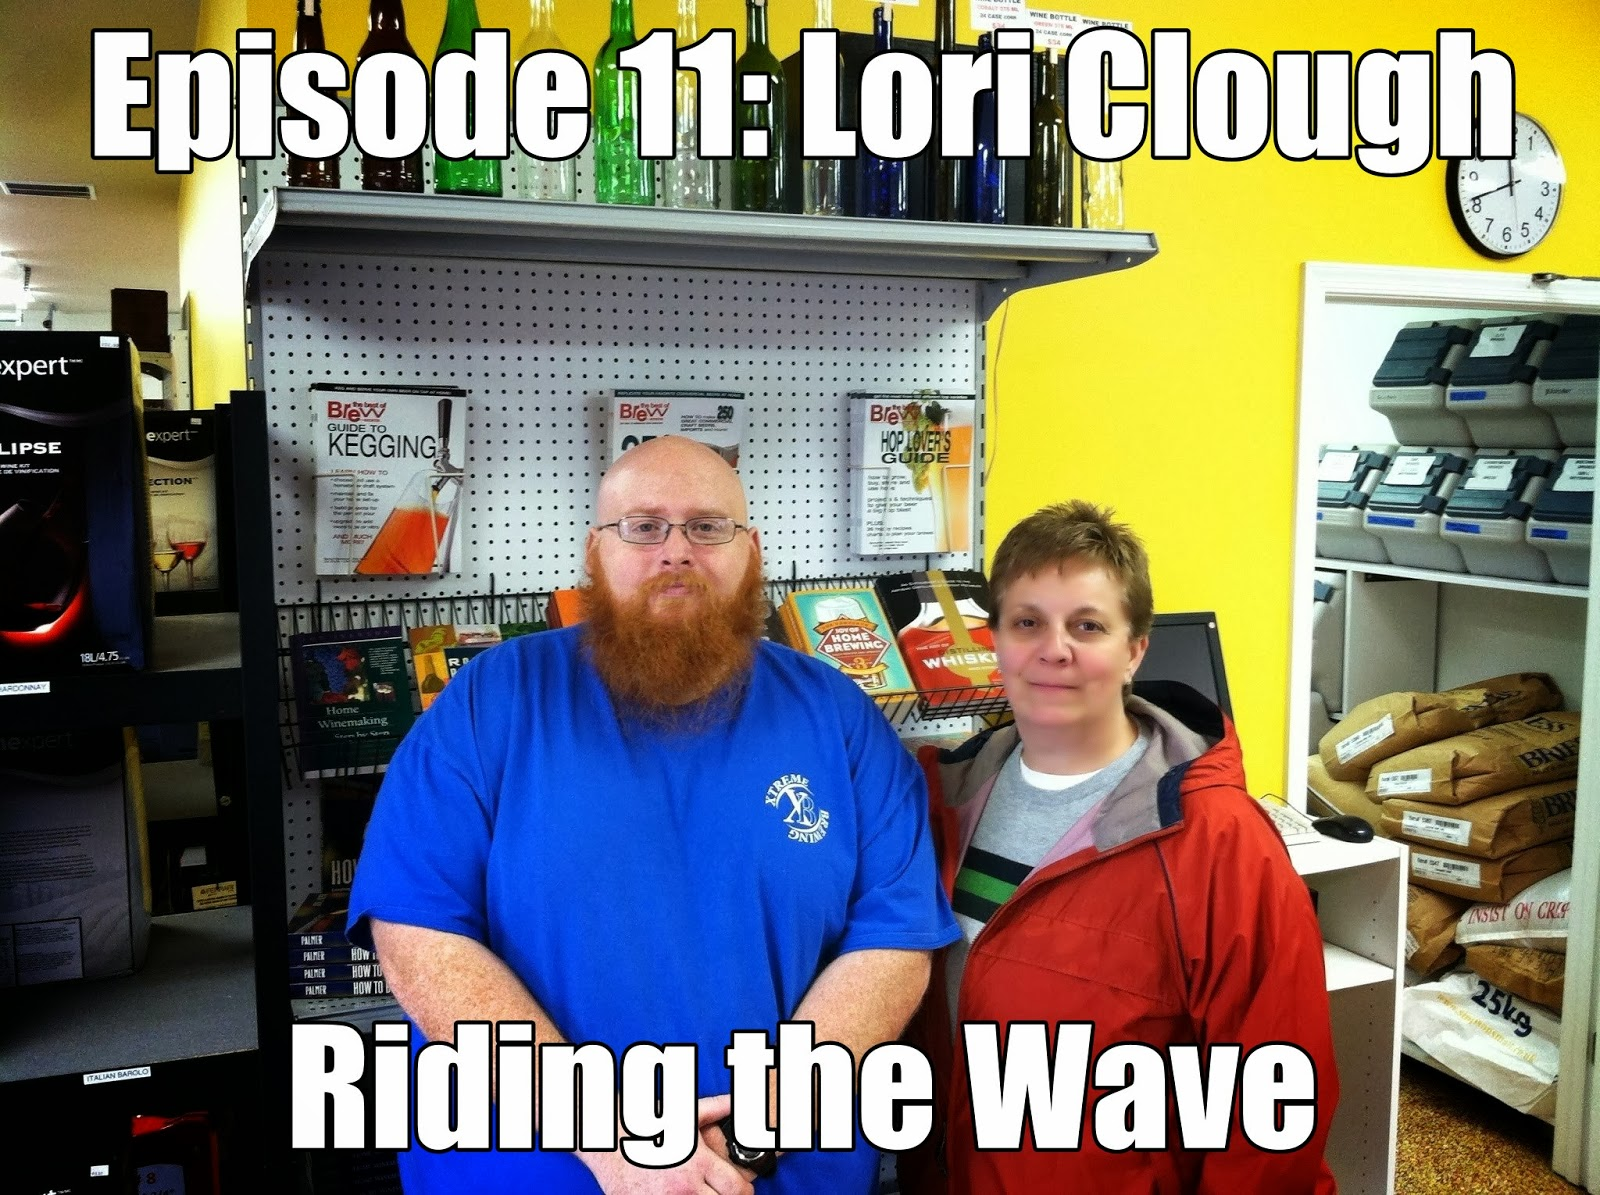 Lori Clough from 3rd Wave Brewing